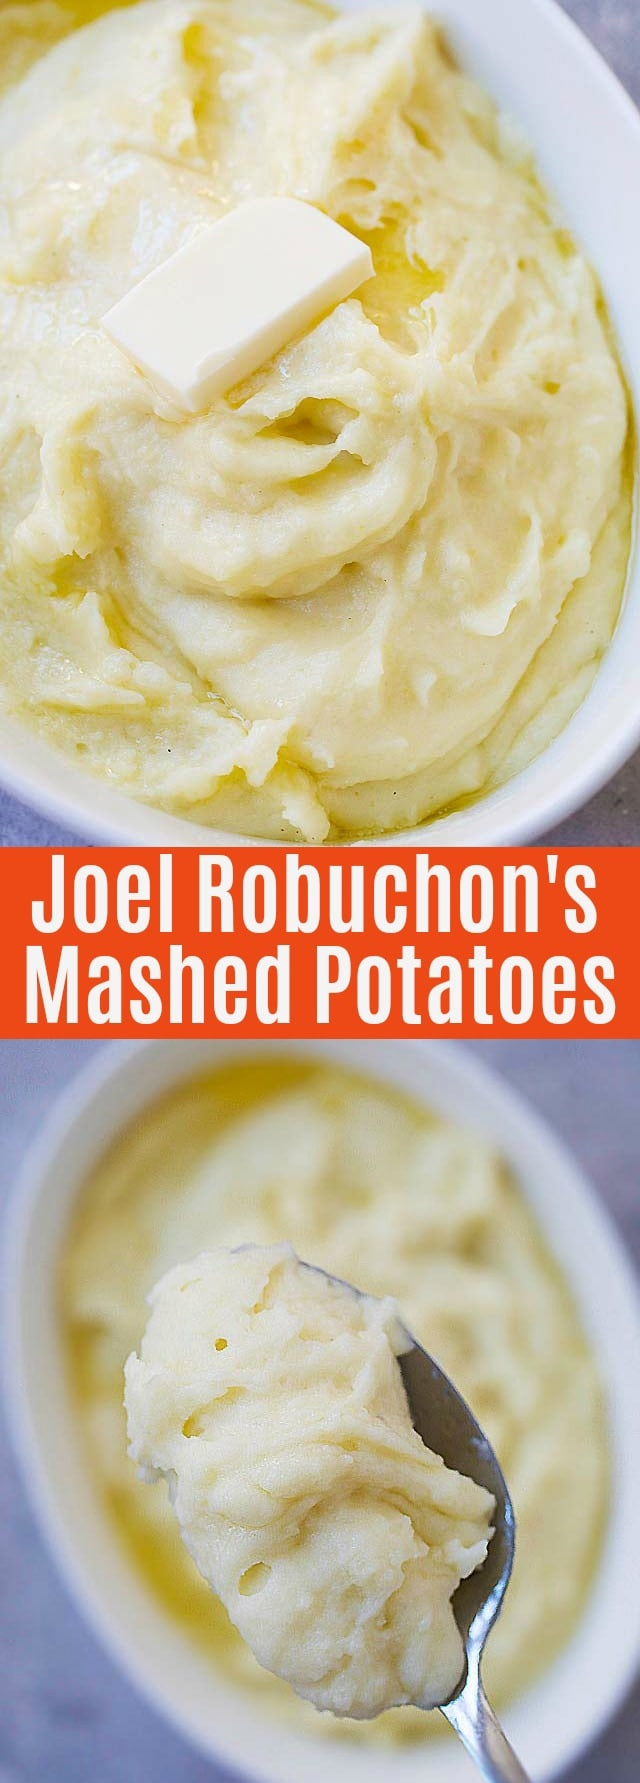 Joel Robuchon's Mashed Potatoes - the best mashed potatoes recipe in the whole world. Learn how to make perfect mashed potatoes,  complete with step-by-step picture guide.